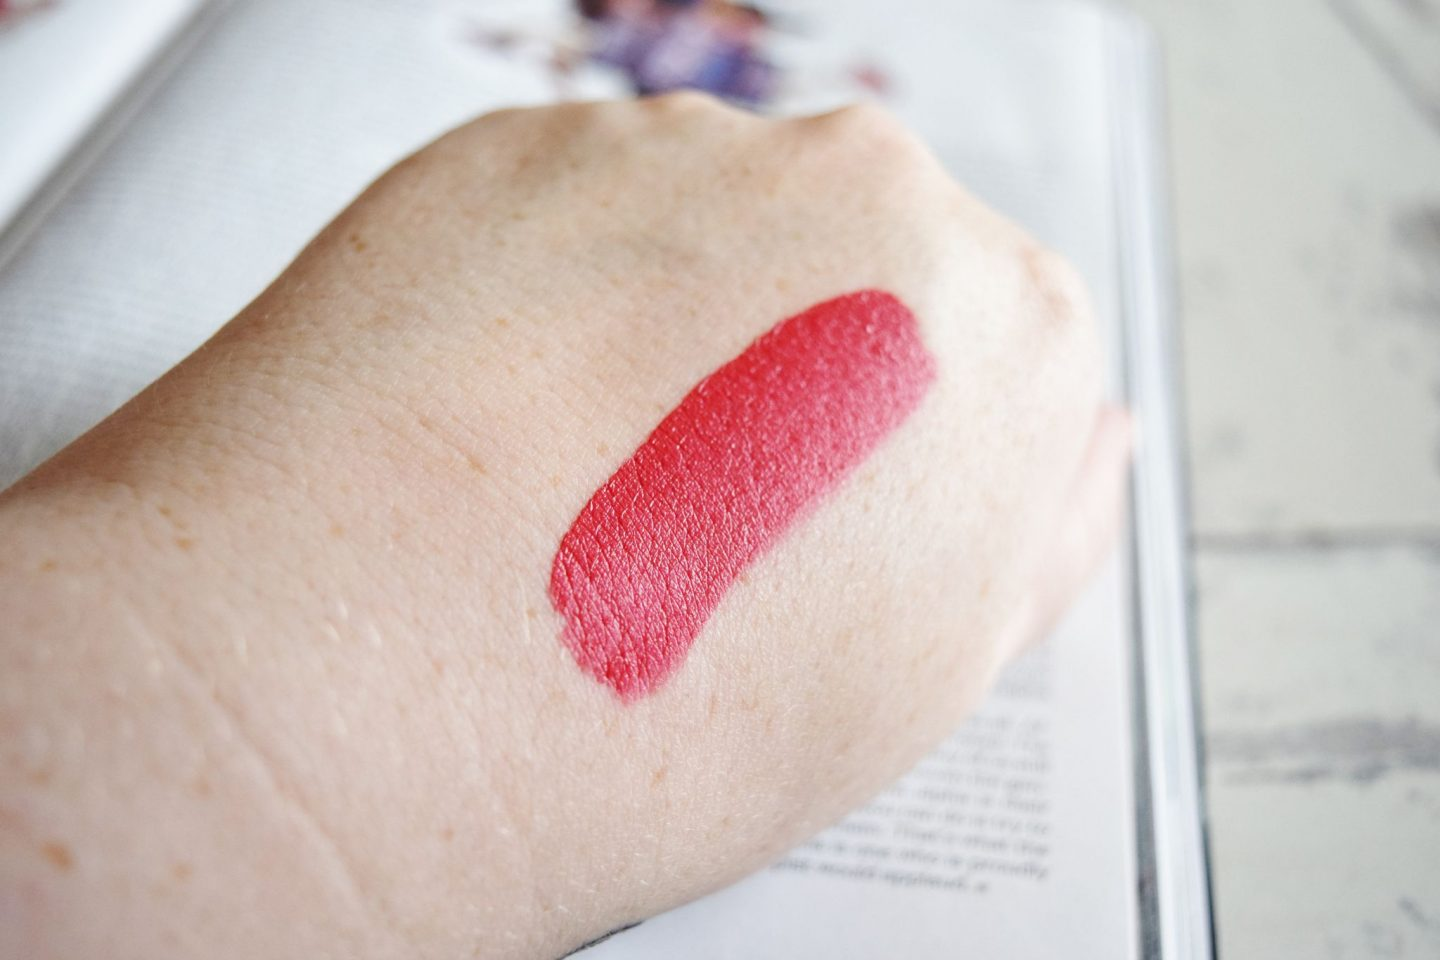 Bare Minerals Statement Matte Liquid Lip Colour in Juicy swatch